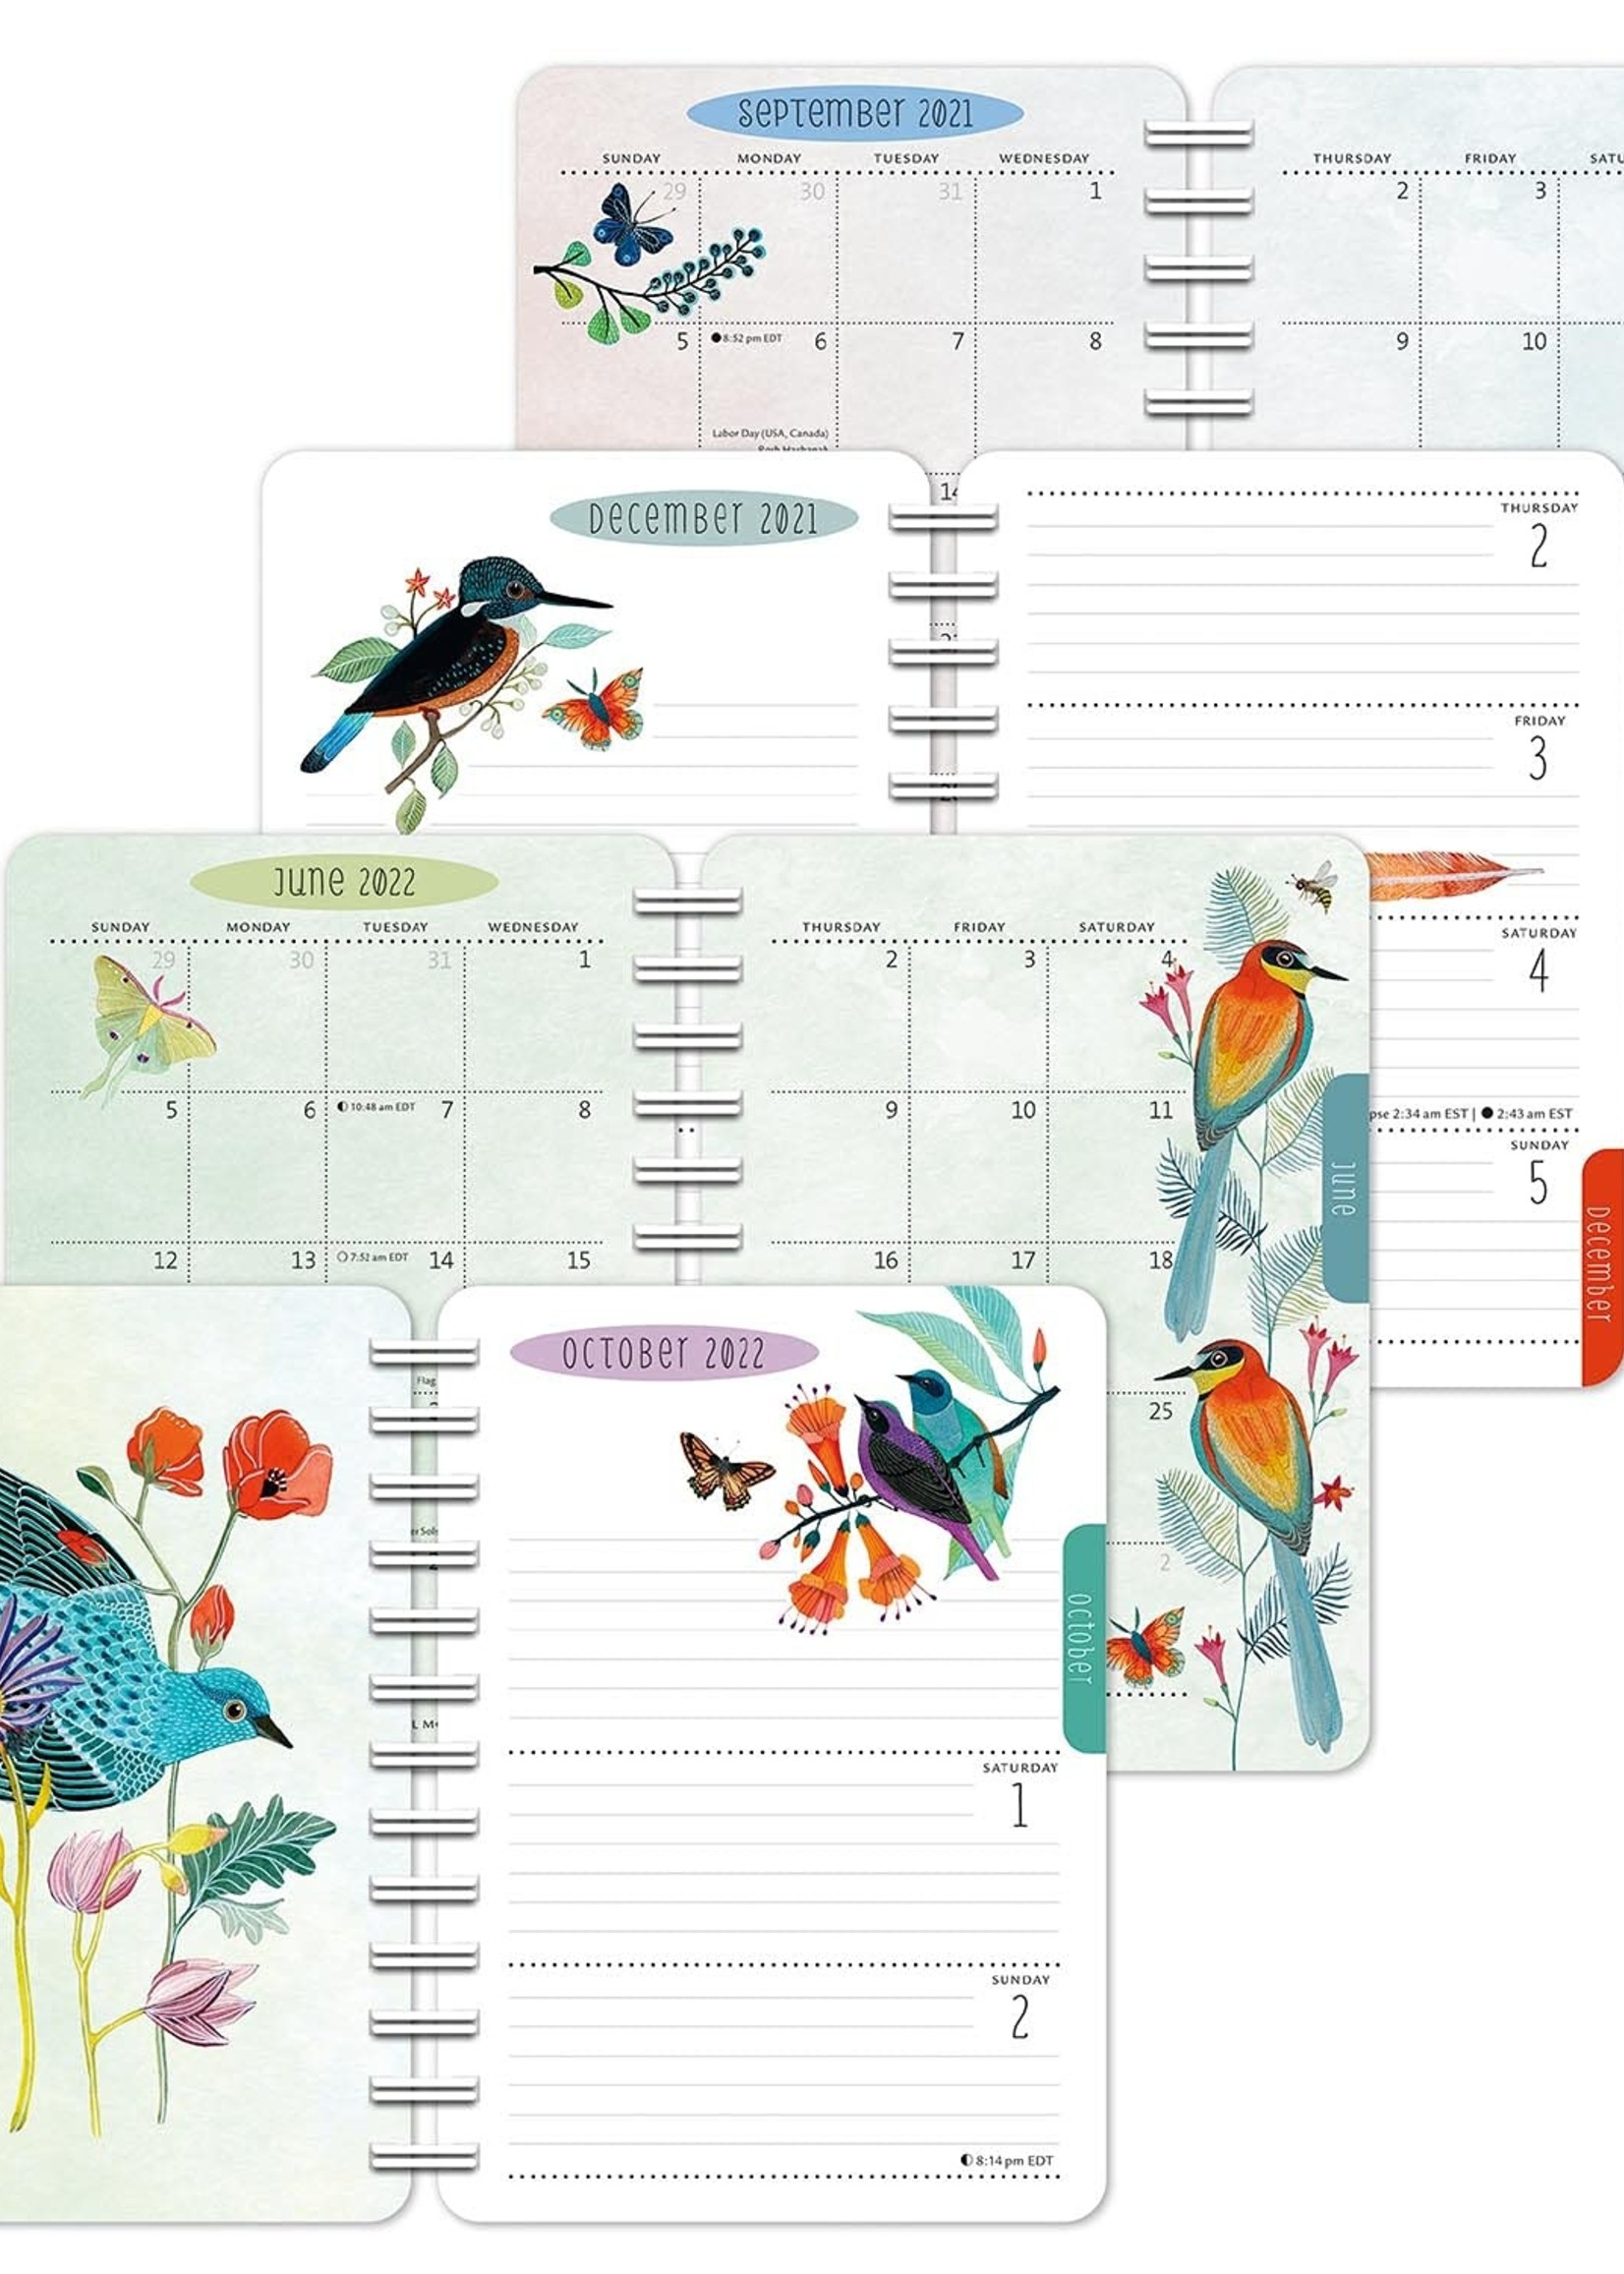 Cal 22 Weekly Planner Birds of a Feather